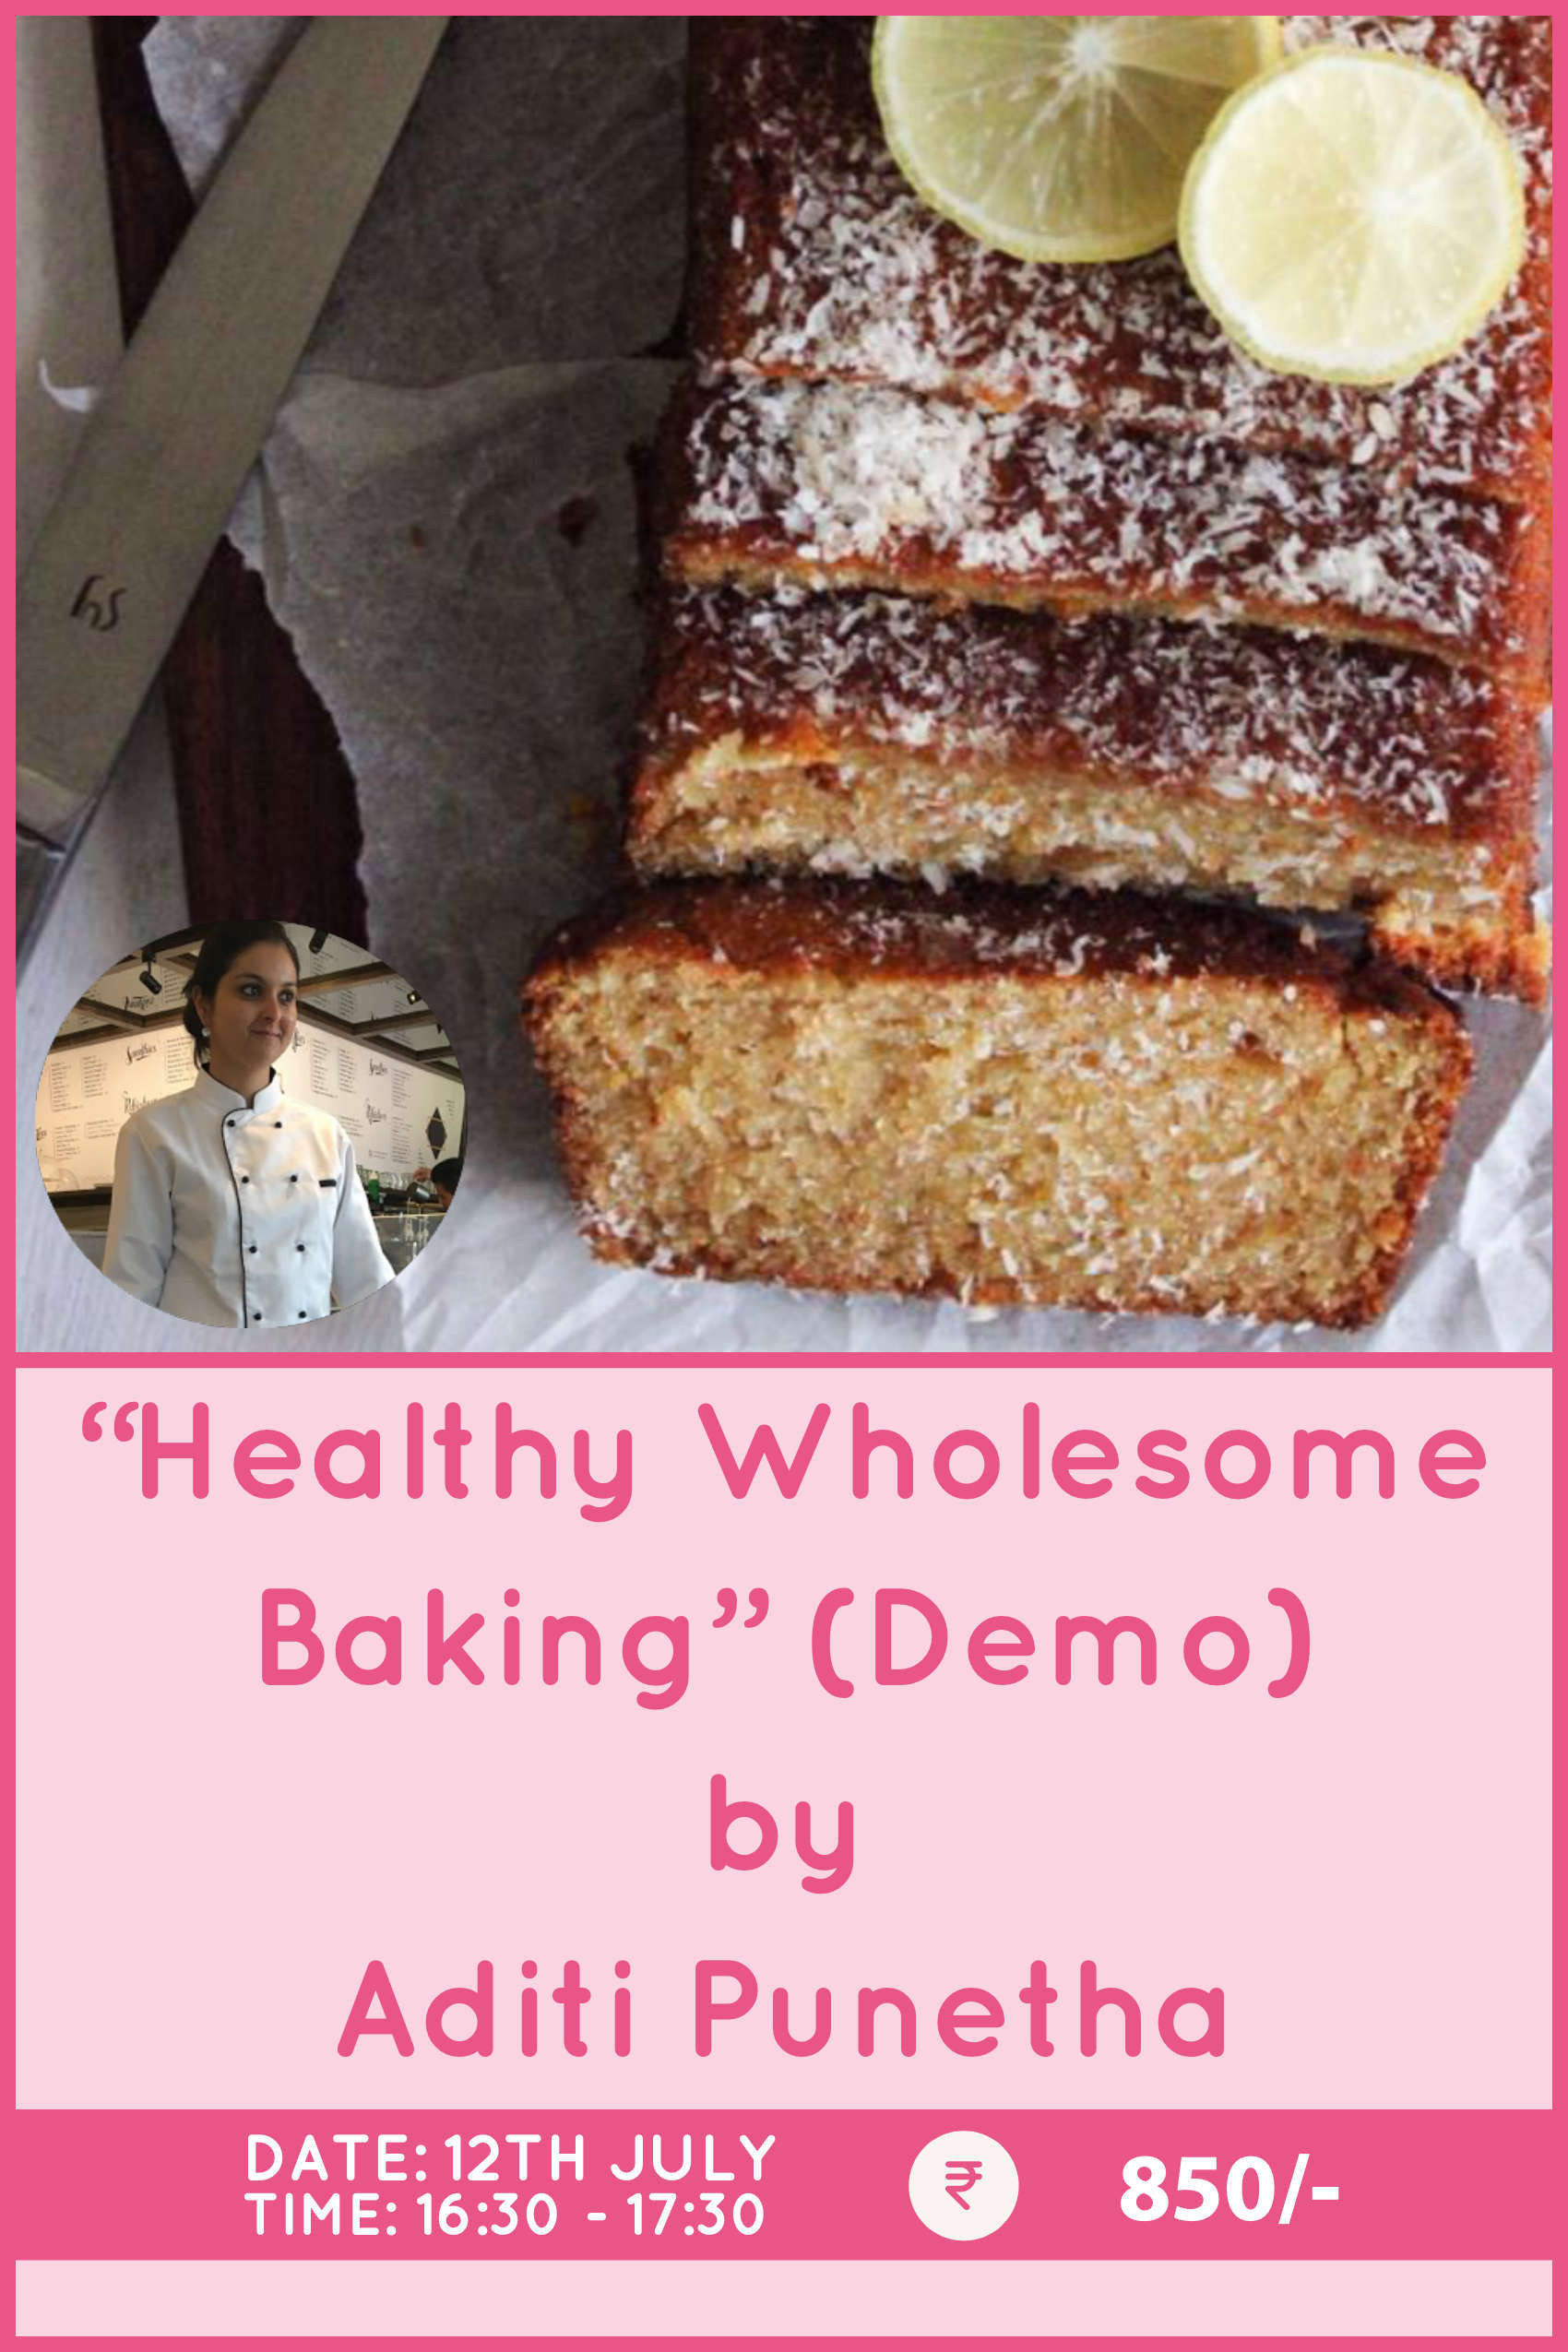 Healthy Wholesome Baking by Aditi Punetha